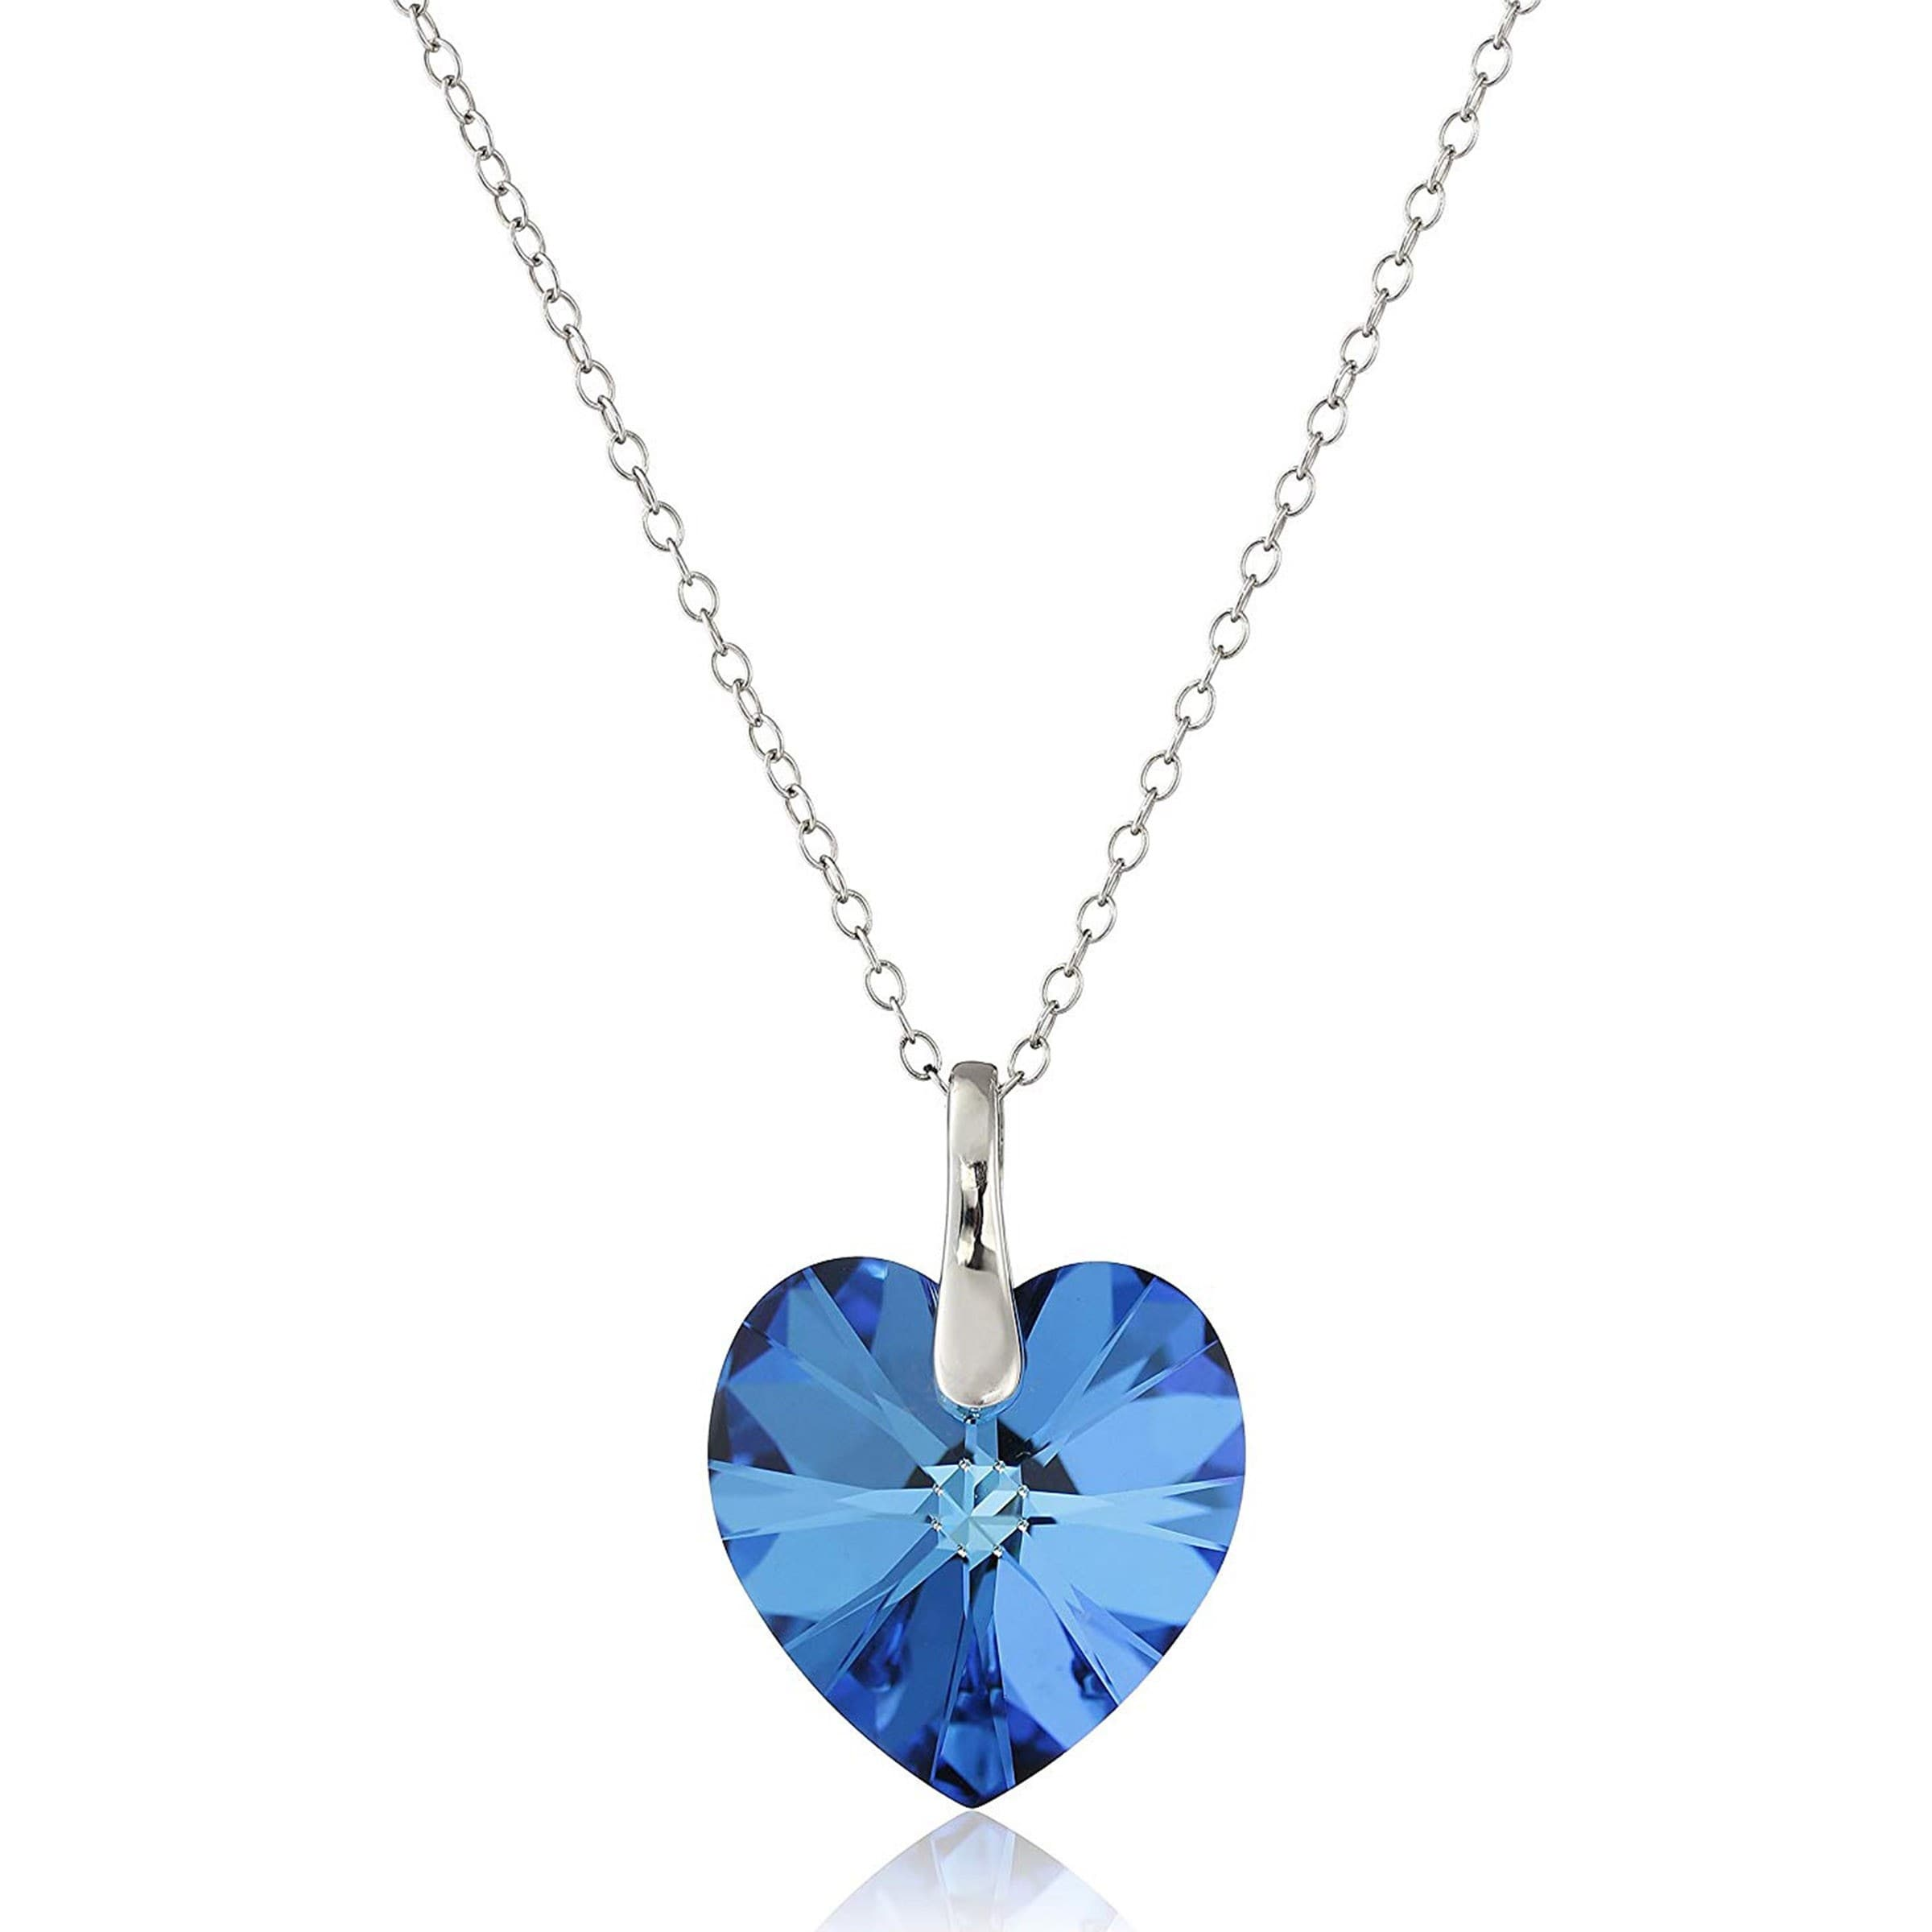 Crystaluxe Heart Pendant with Bermuda Blue Crystal in Sterling Silver